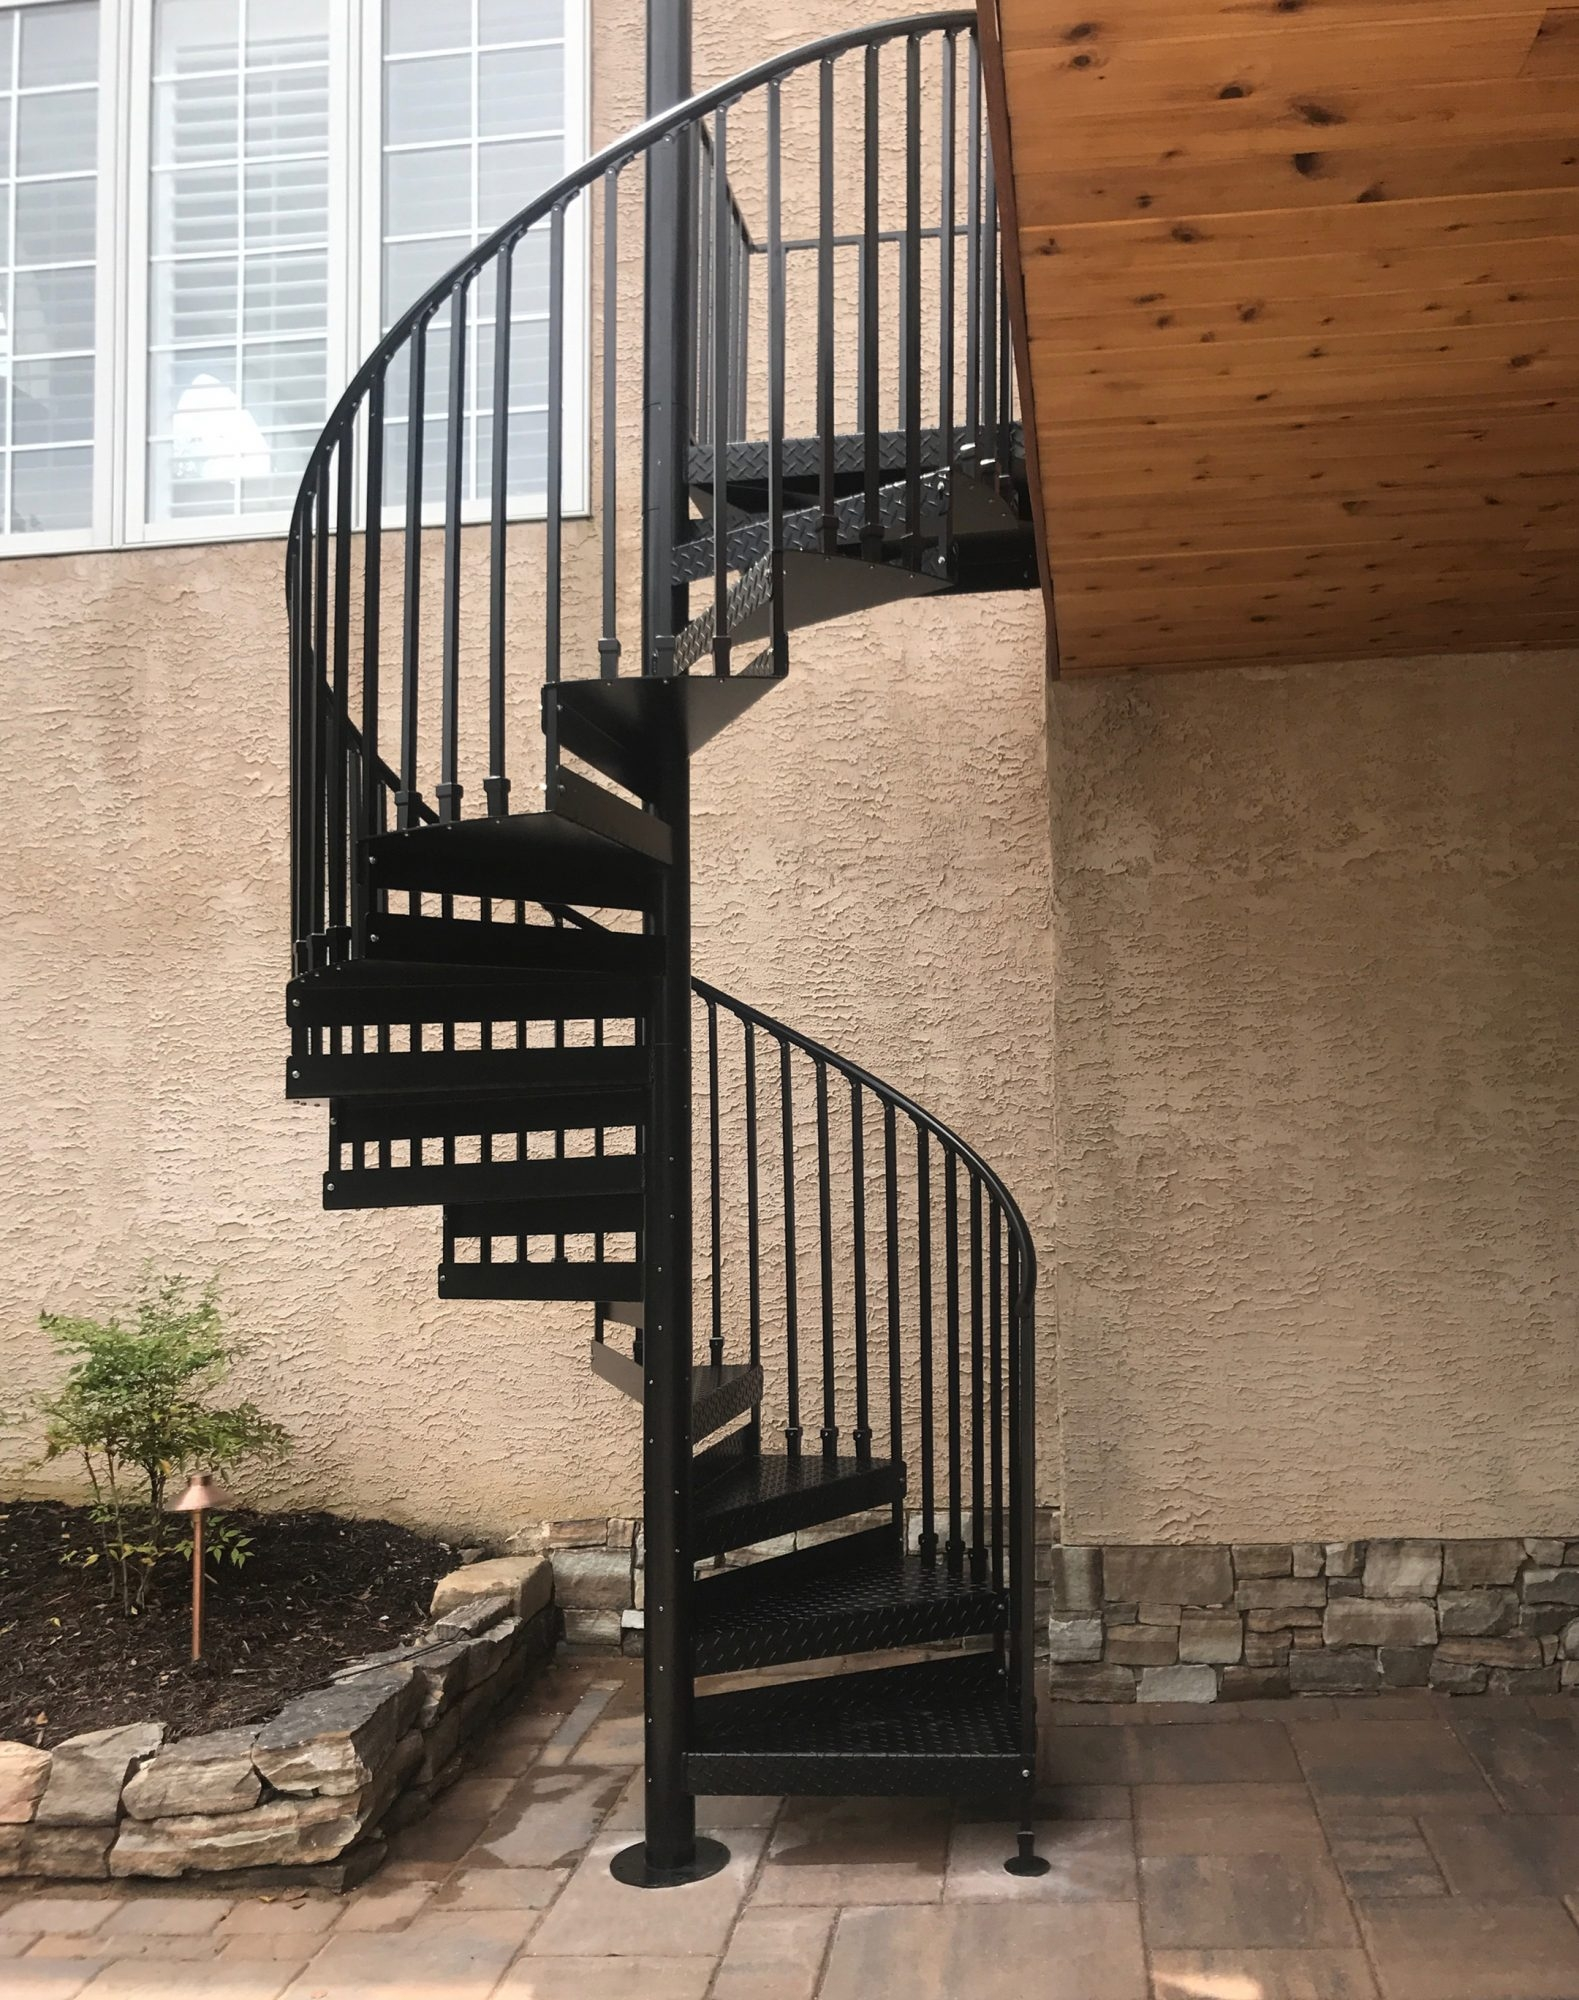 Discover The Ultimate Staircase Alternative Trex Spiral Stairs | Exterior Metal Spiral Staircase | Rustic Metal | Deck | Crystal Handrail | Bar Modern | Railing